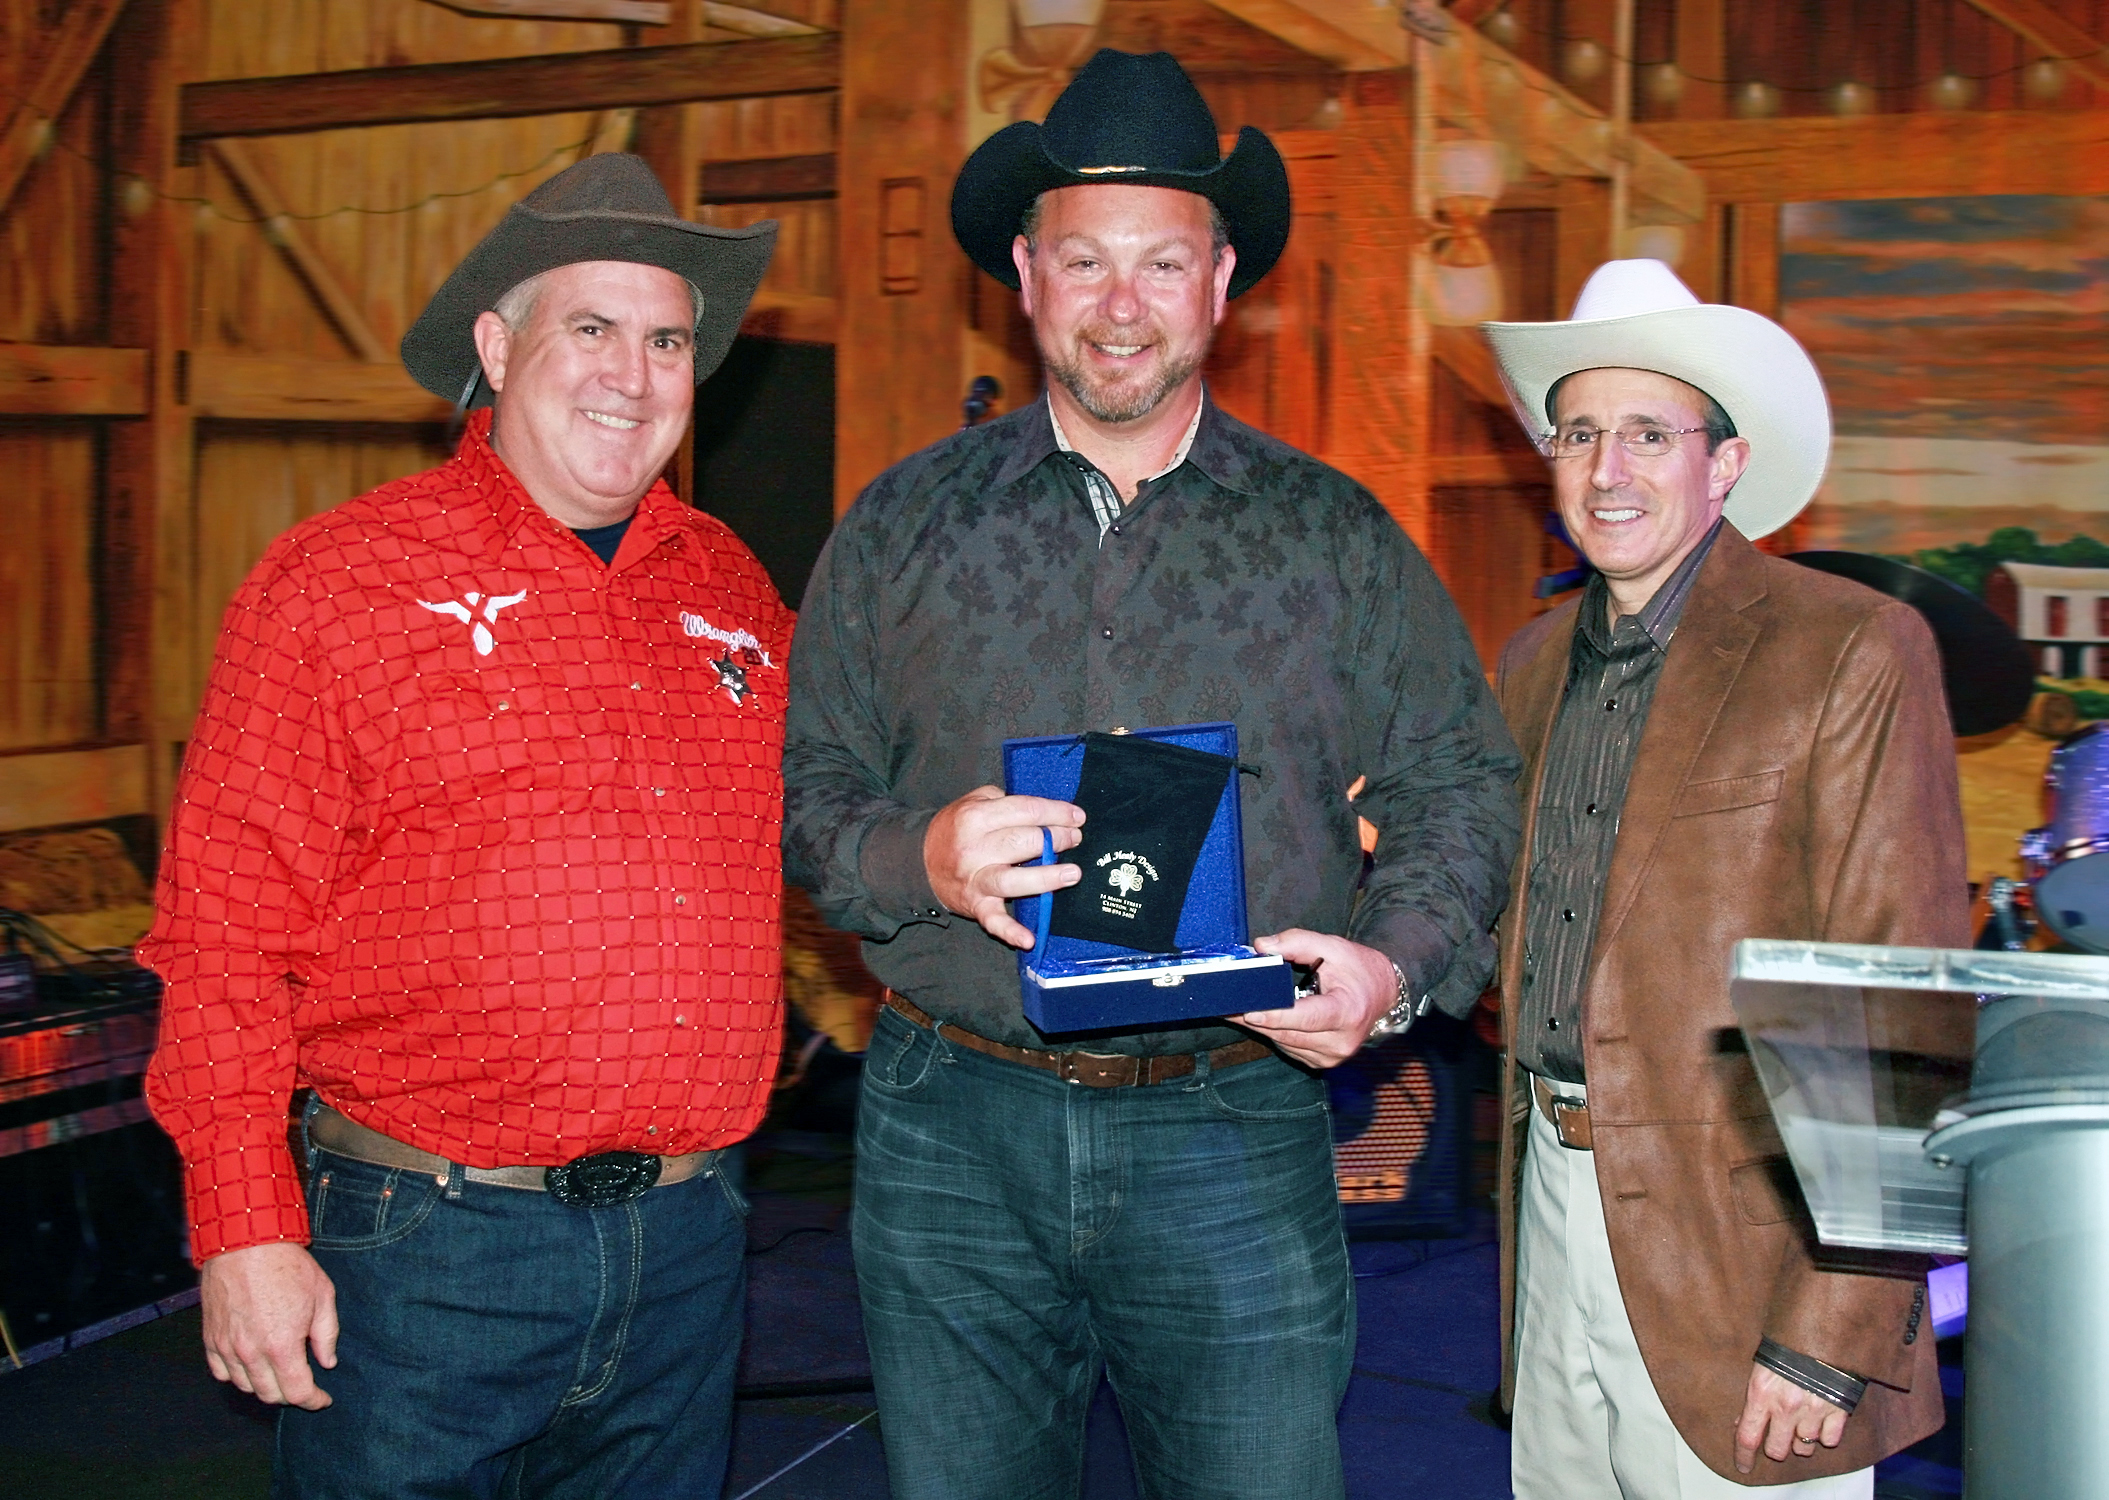 Advancing Opportunities Announces Honorees for 3rd Annual Spring Hoedown